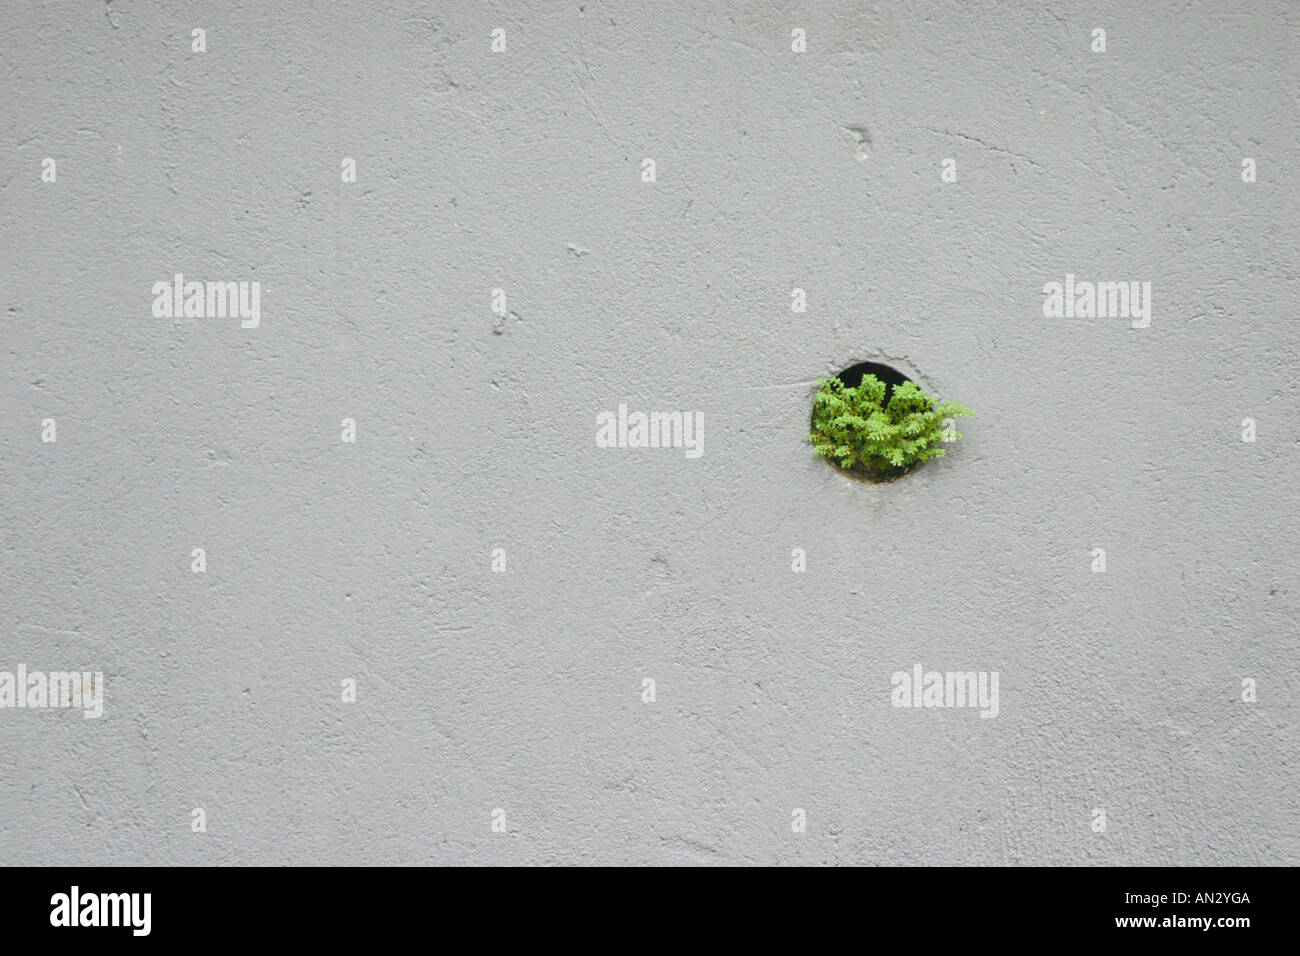 plant growing in drainage hole of a wall. Concept of survival in tough conditions Stock Photo